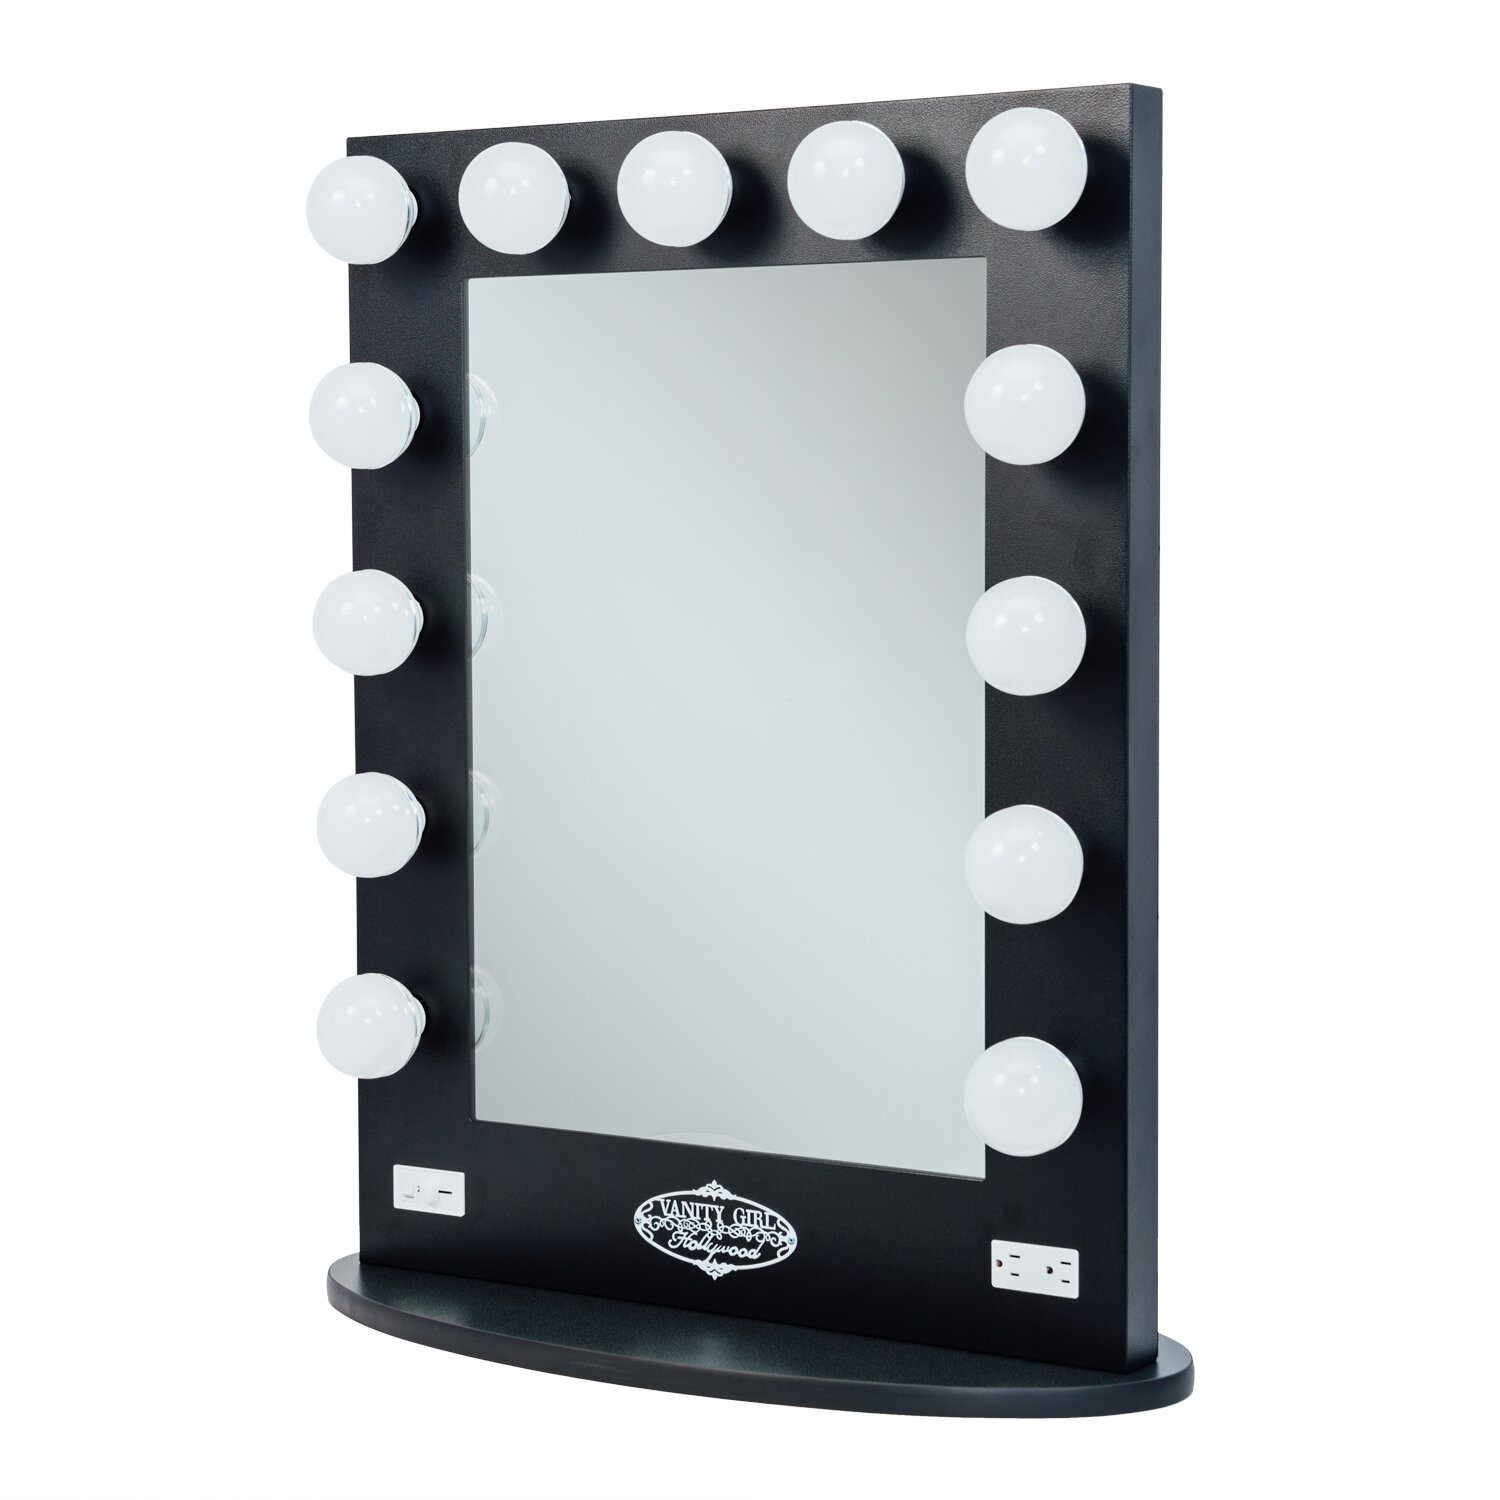 Vanity Girl Mirror With Lights : Vanity Girl Hollywood Broadway Lighted Vanity Mirror & Reviews Wayfair